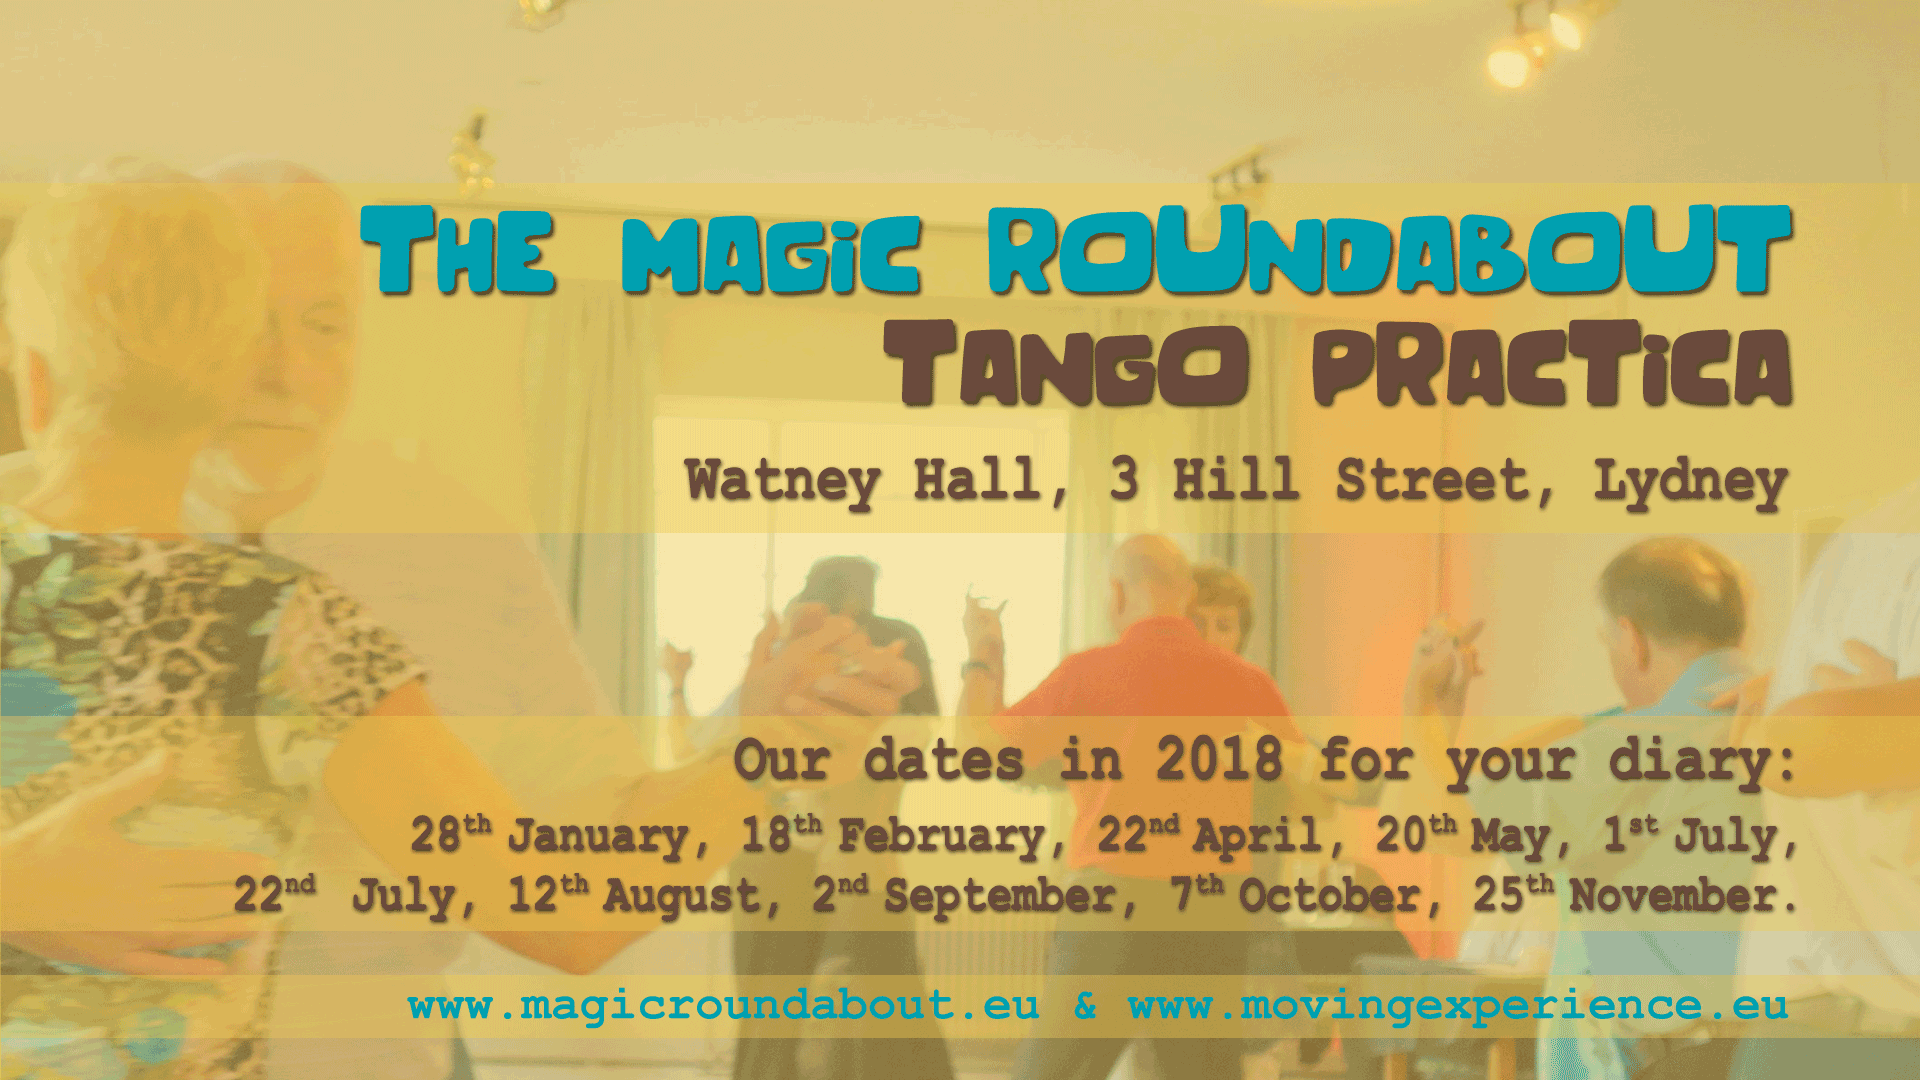 FREE Tango Practica at The Magic Roundabout Milongas